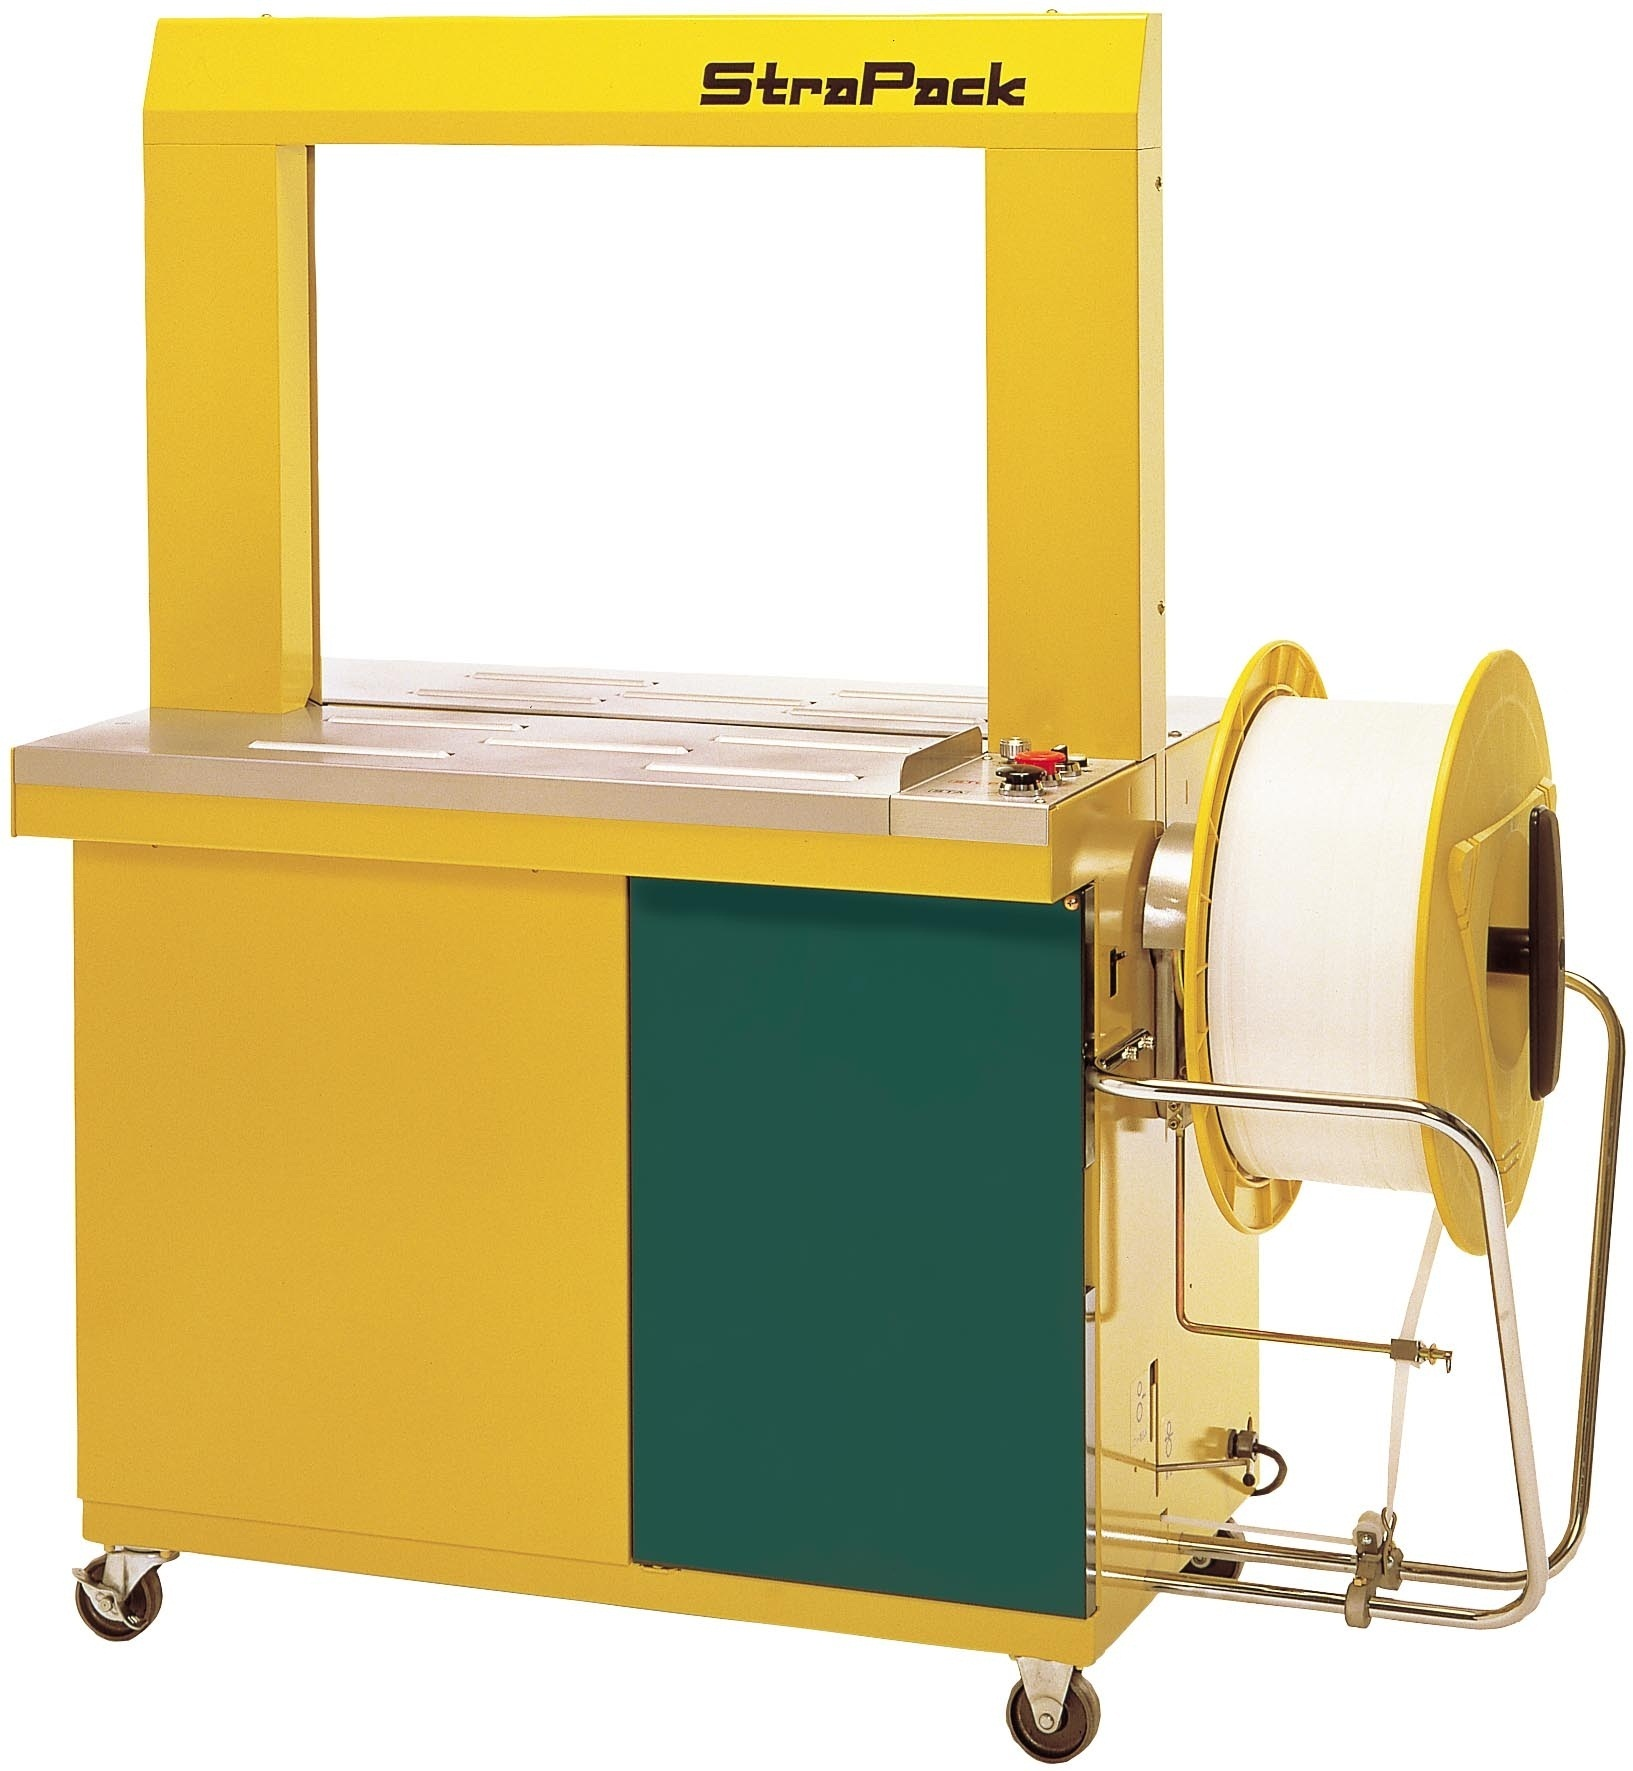 RQ-8 Automatic Strapping Machine